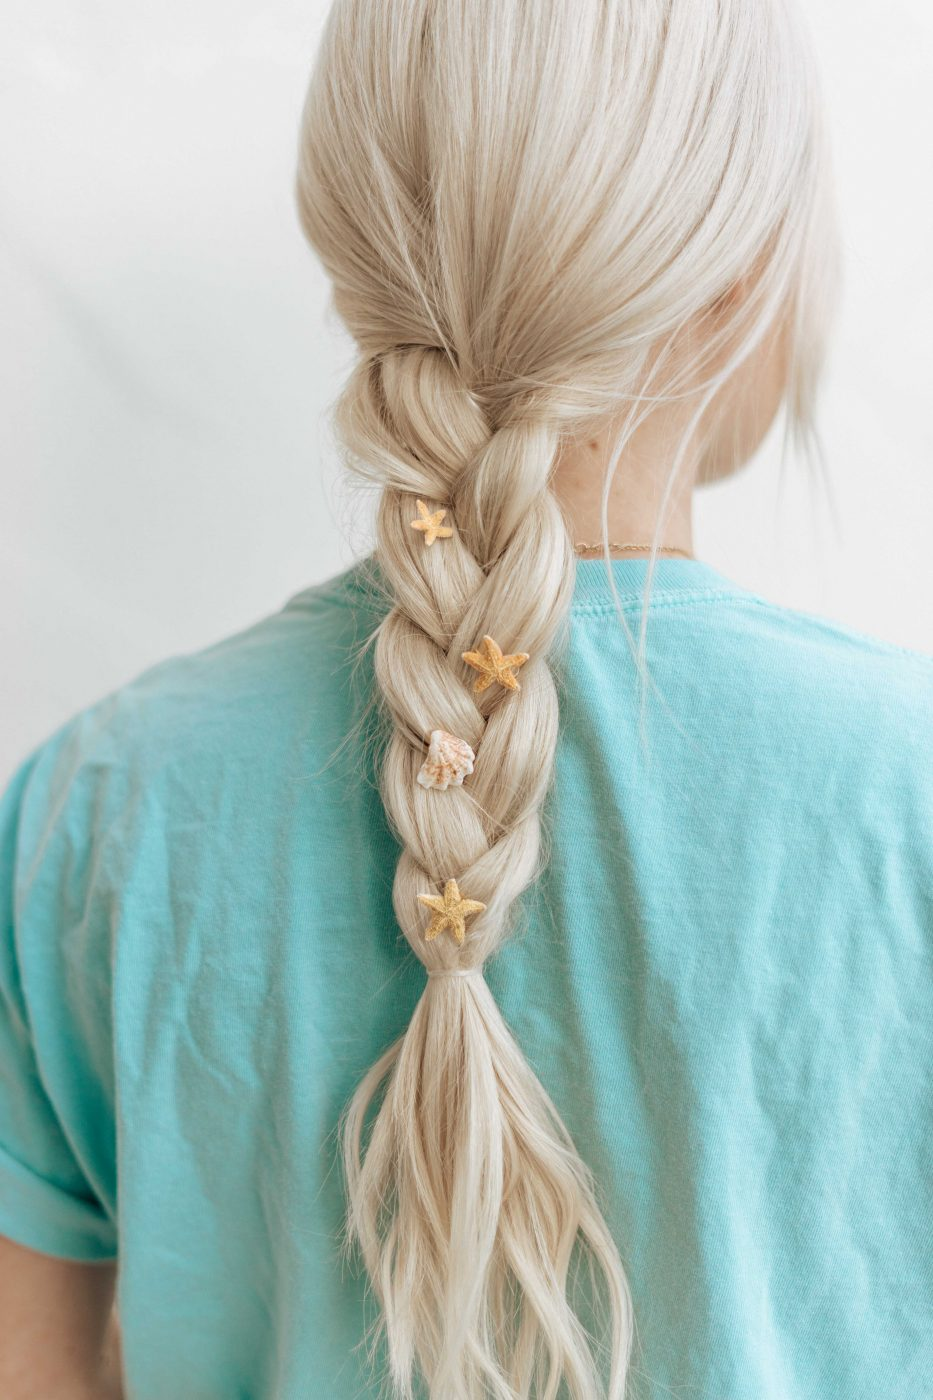 DIY Starfish Hair Rings - Hair Accessories - Sweet Teal by Jenny Bess